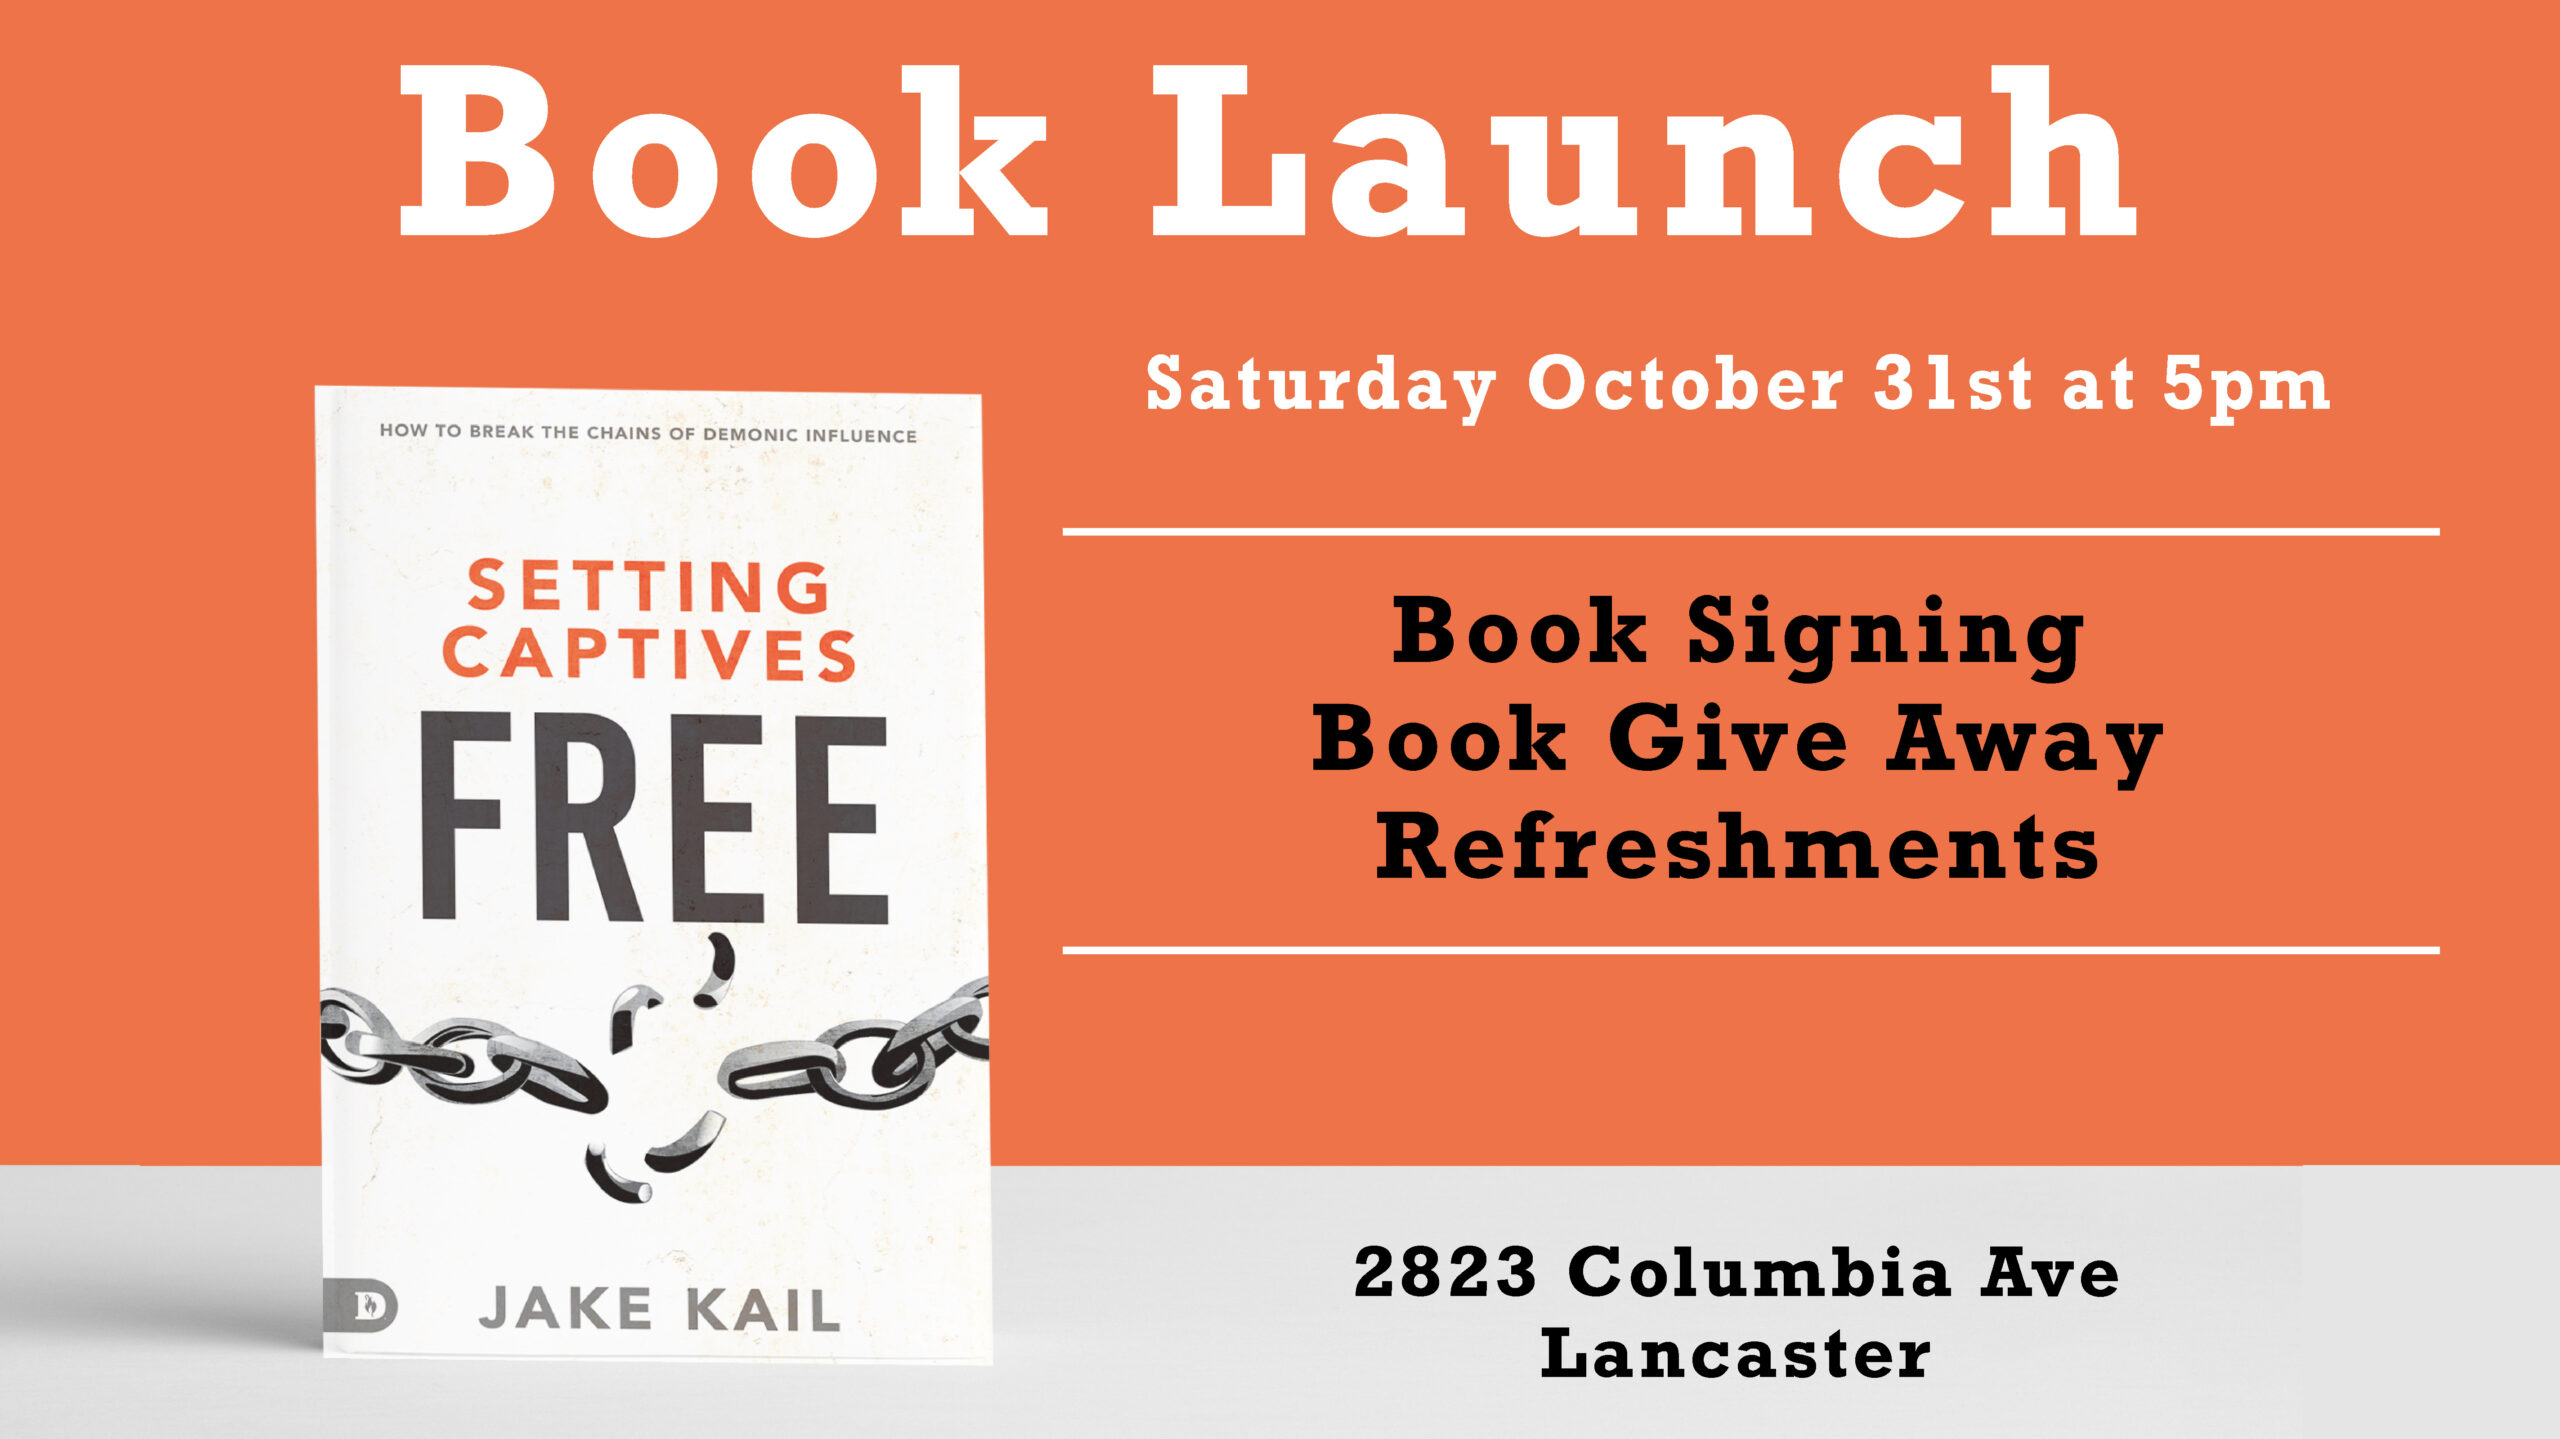 Sign Up for the Book Launch and Meet & Greet!